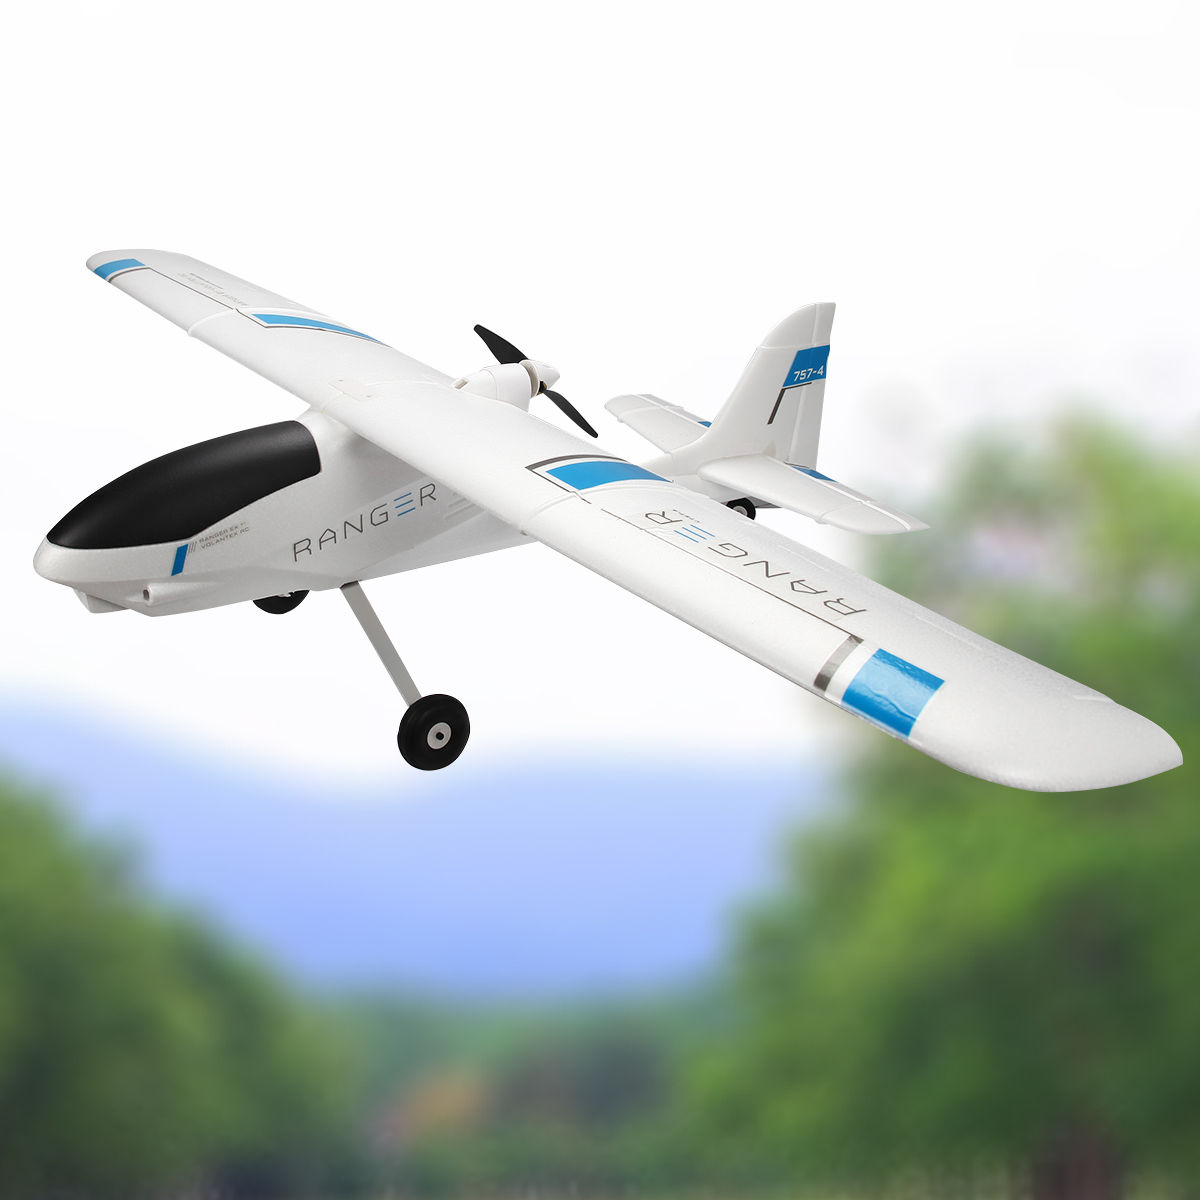 Costway Volantex Ranger 757-4 RC Plane Model Airplane PNP w  Brushless Motor No Radio by Costway